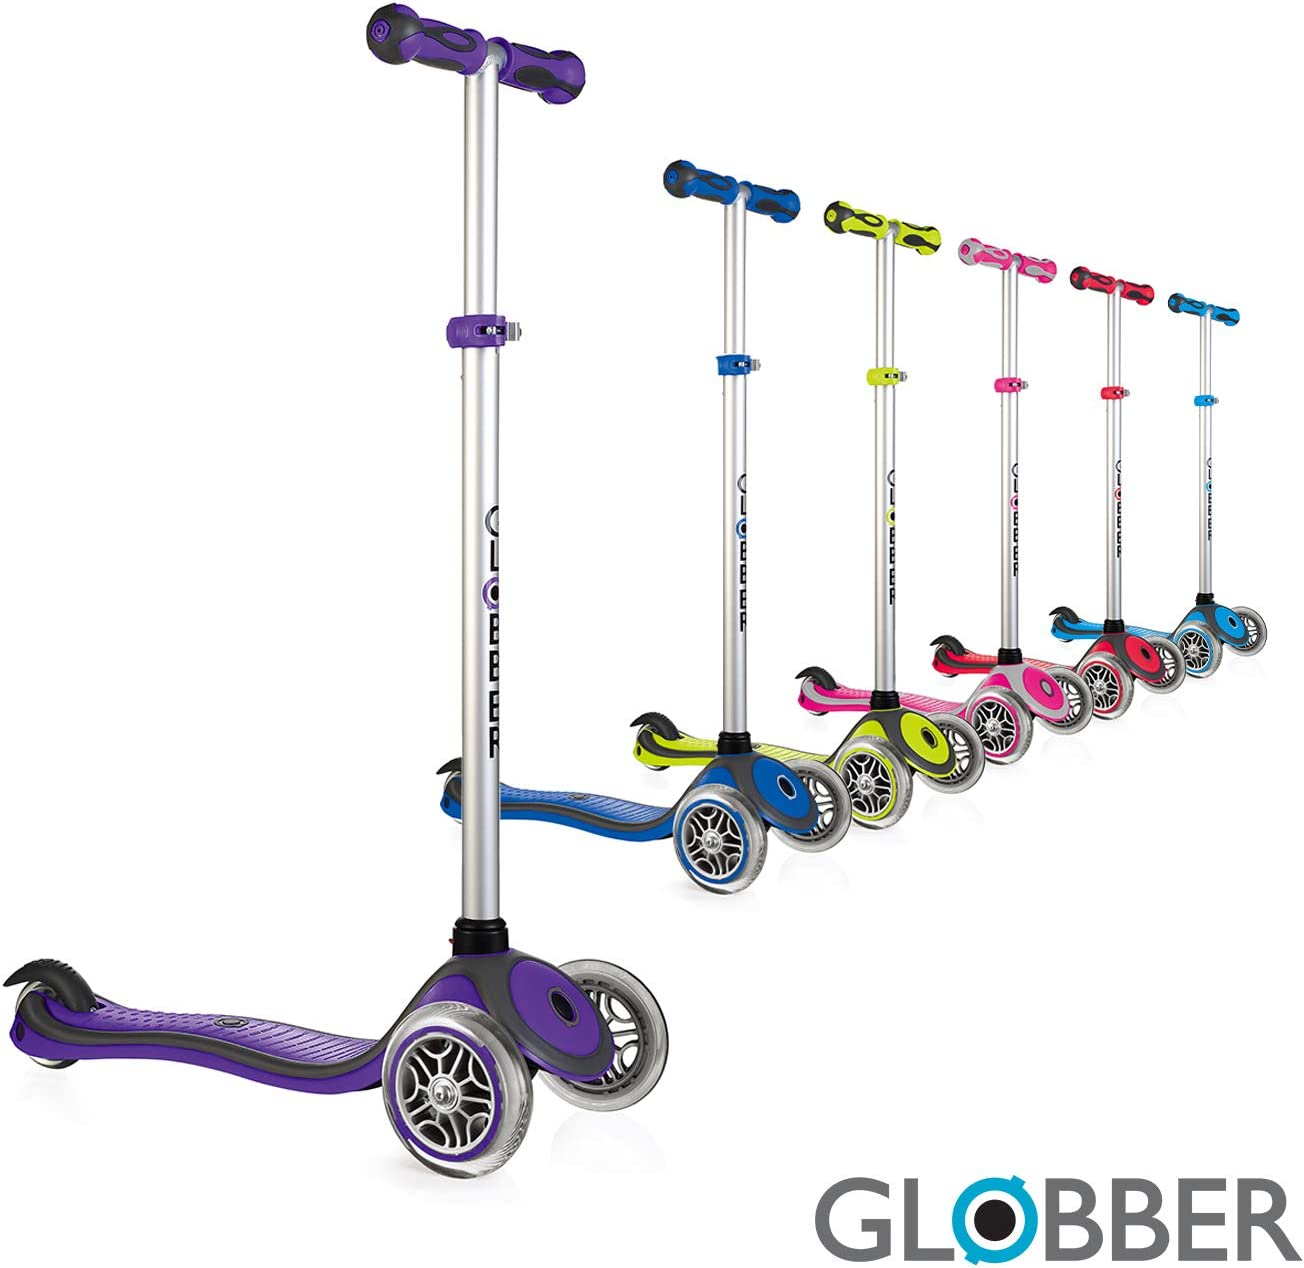 Globber V2 3-Wheel 4 Adjustable Height Scooter Zero Assembly Learn to Steer Patented Steering Lock Great for Kids Toddlers Girls or Boys Reinforced Body Supports Up to 110lbs